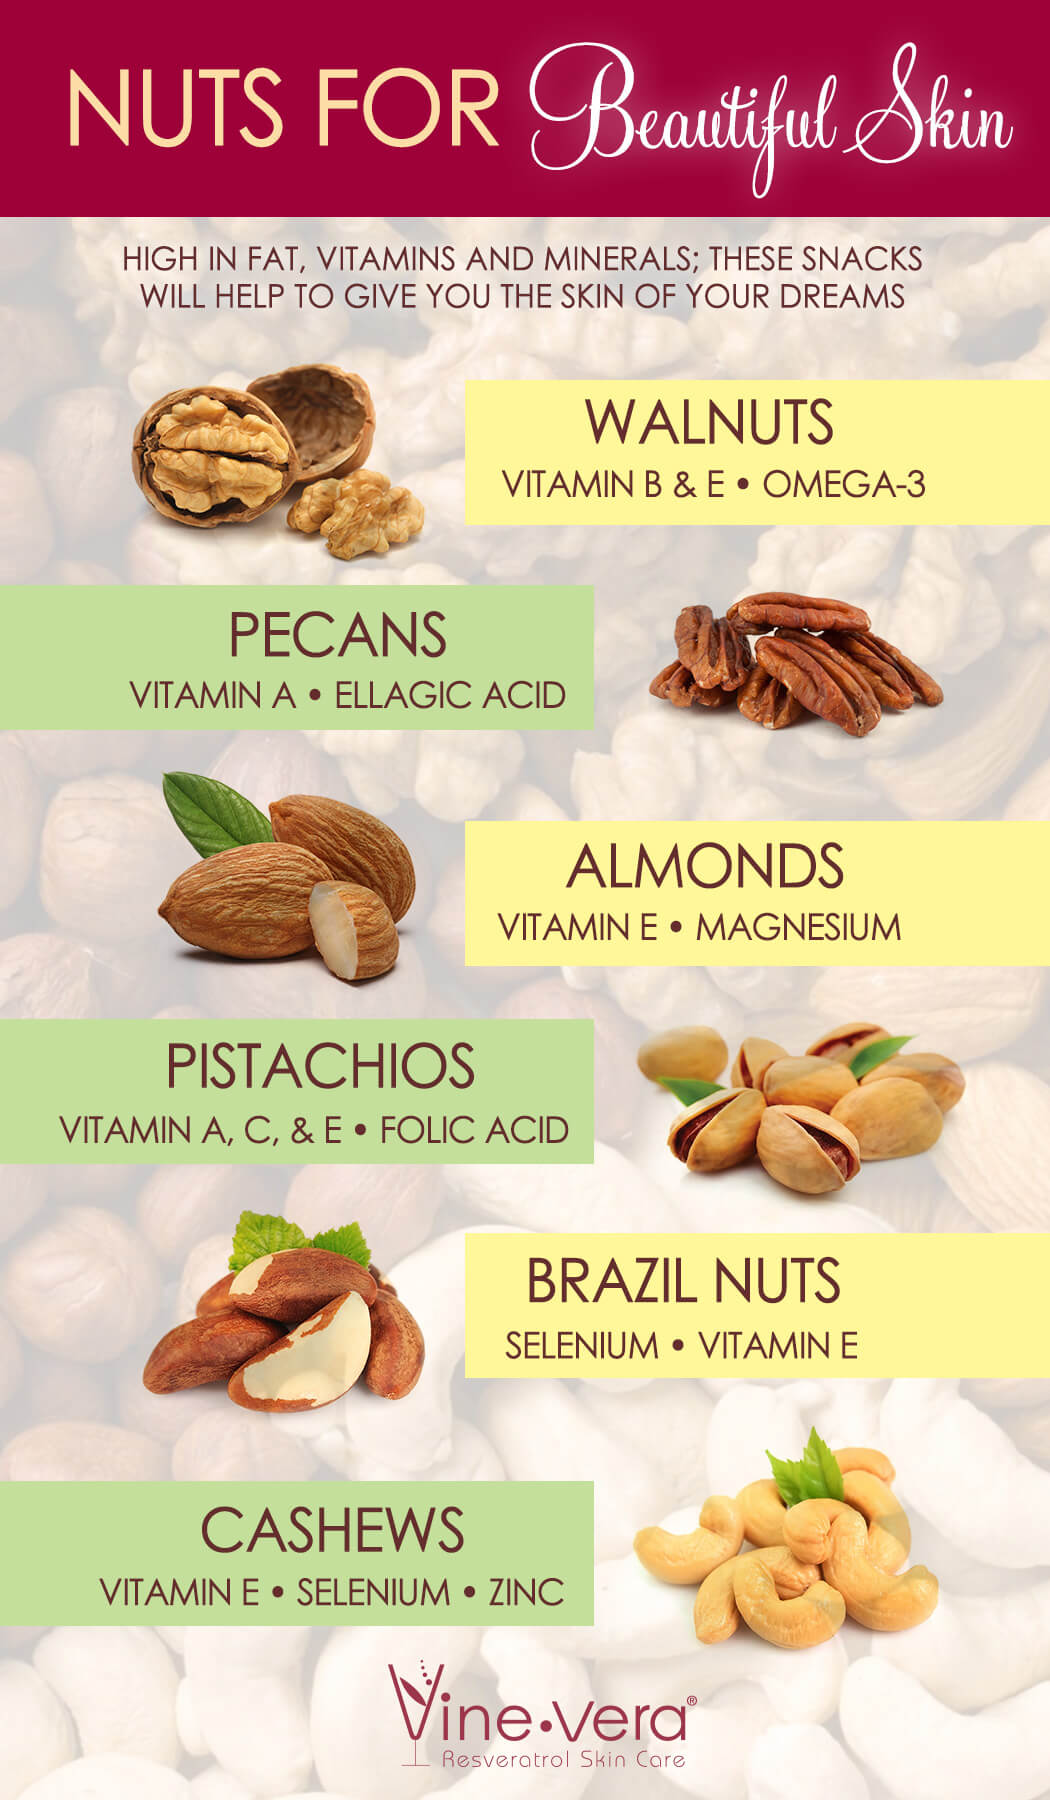 Infographic on nuts and their effects on the skin